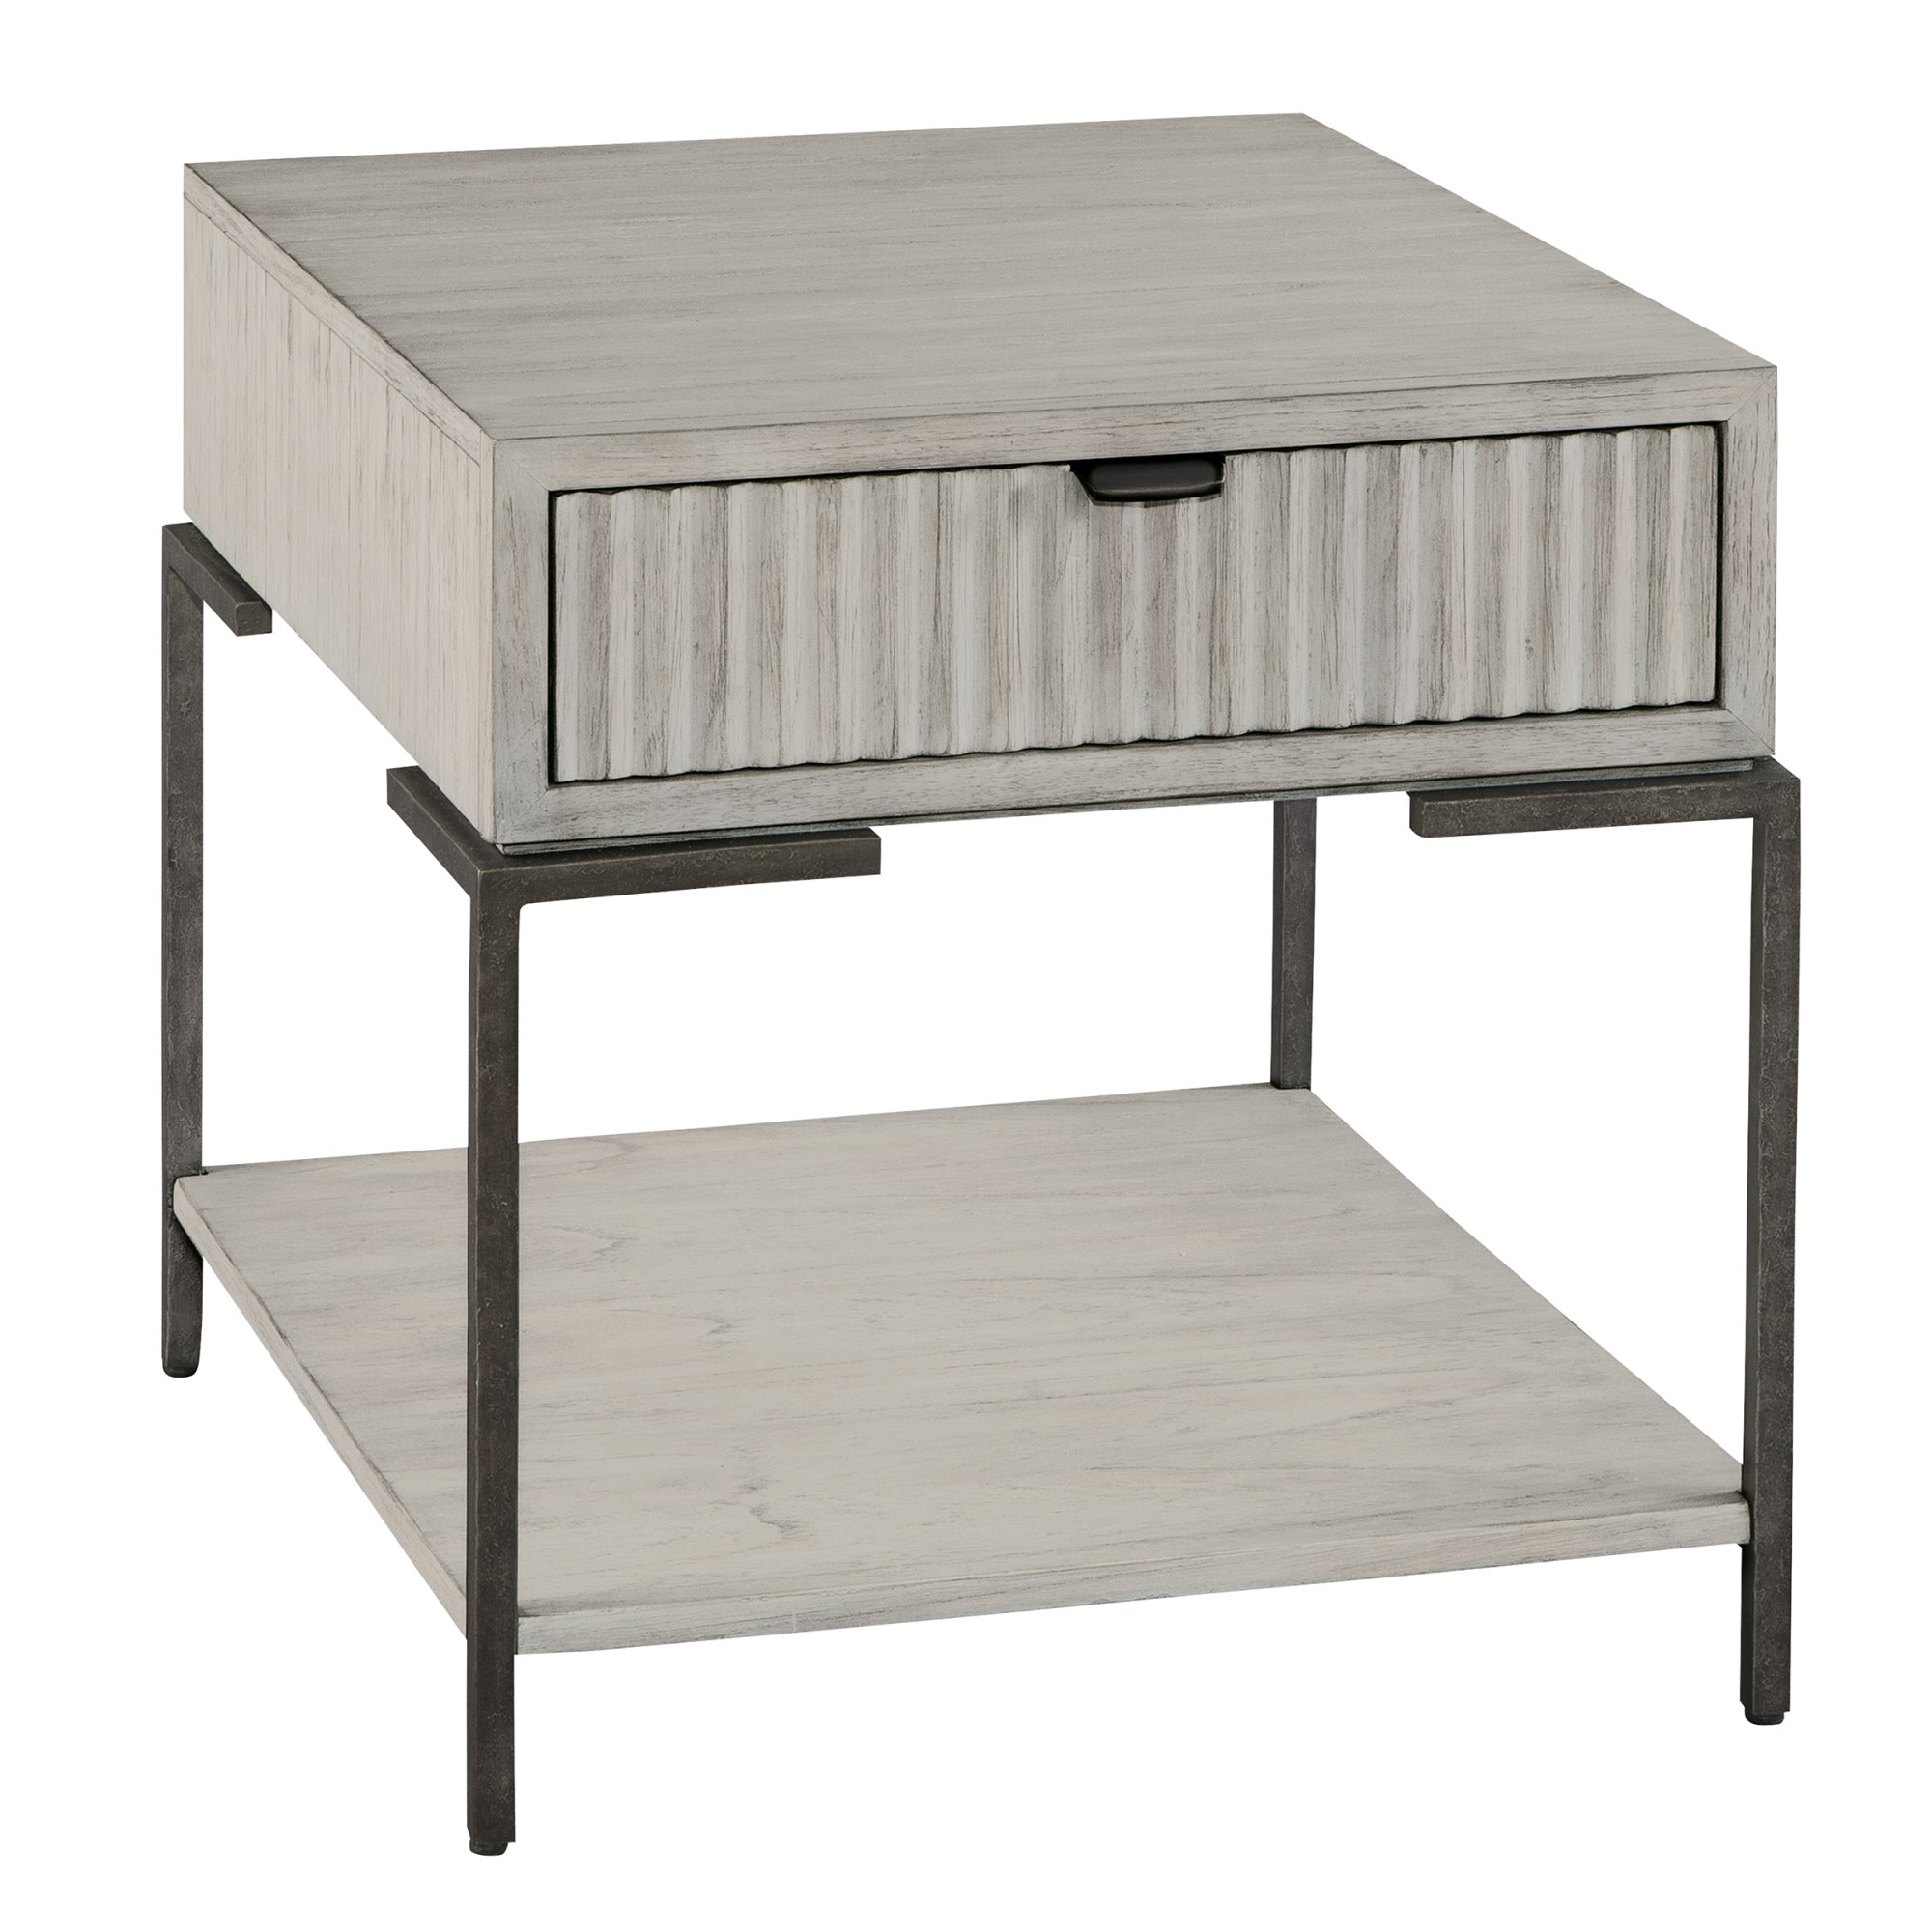 Image for 2-4103 Sierra Heights Lamp Table with Drawer from Hekman Official Website